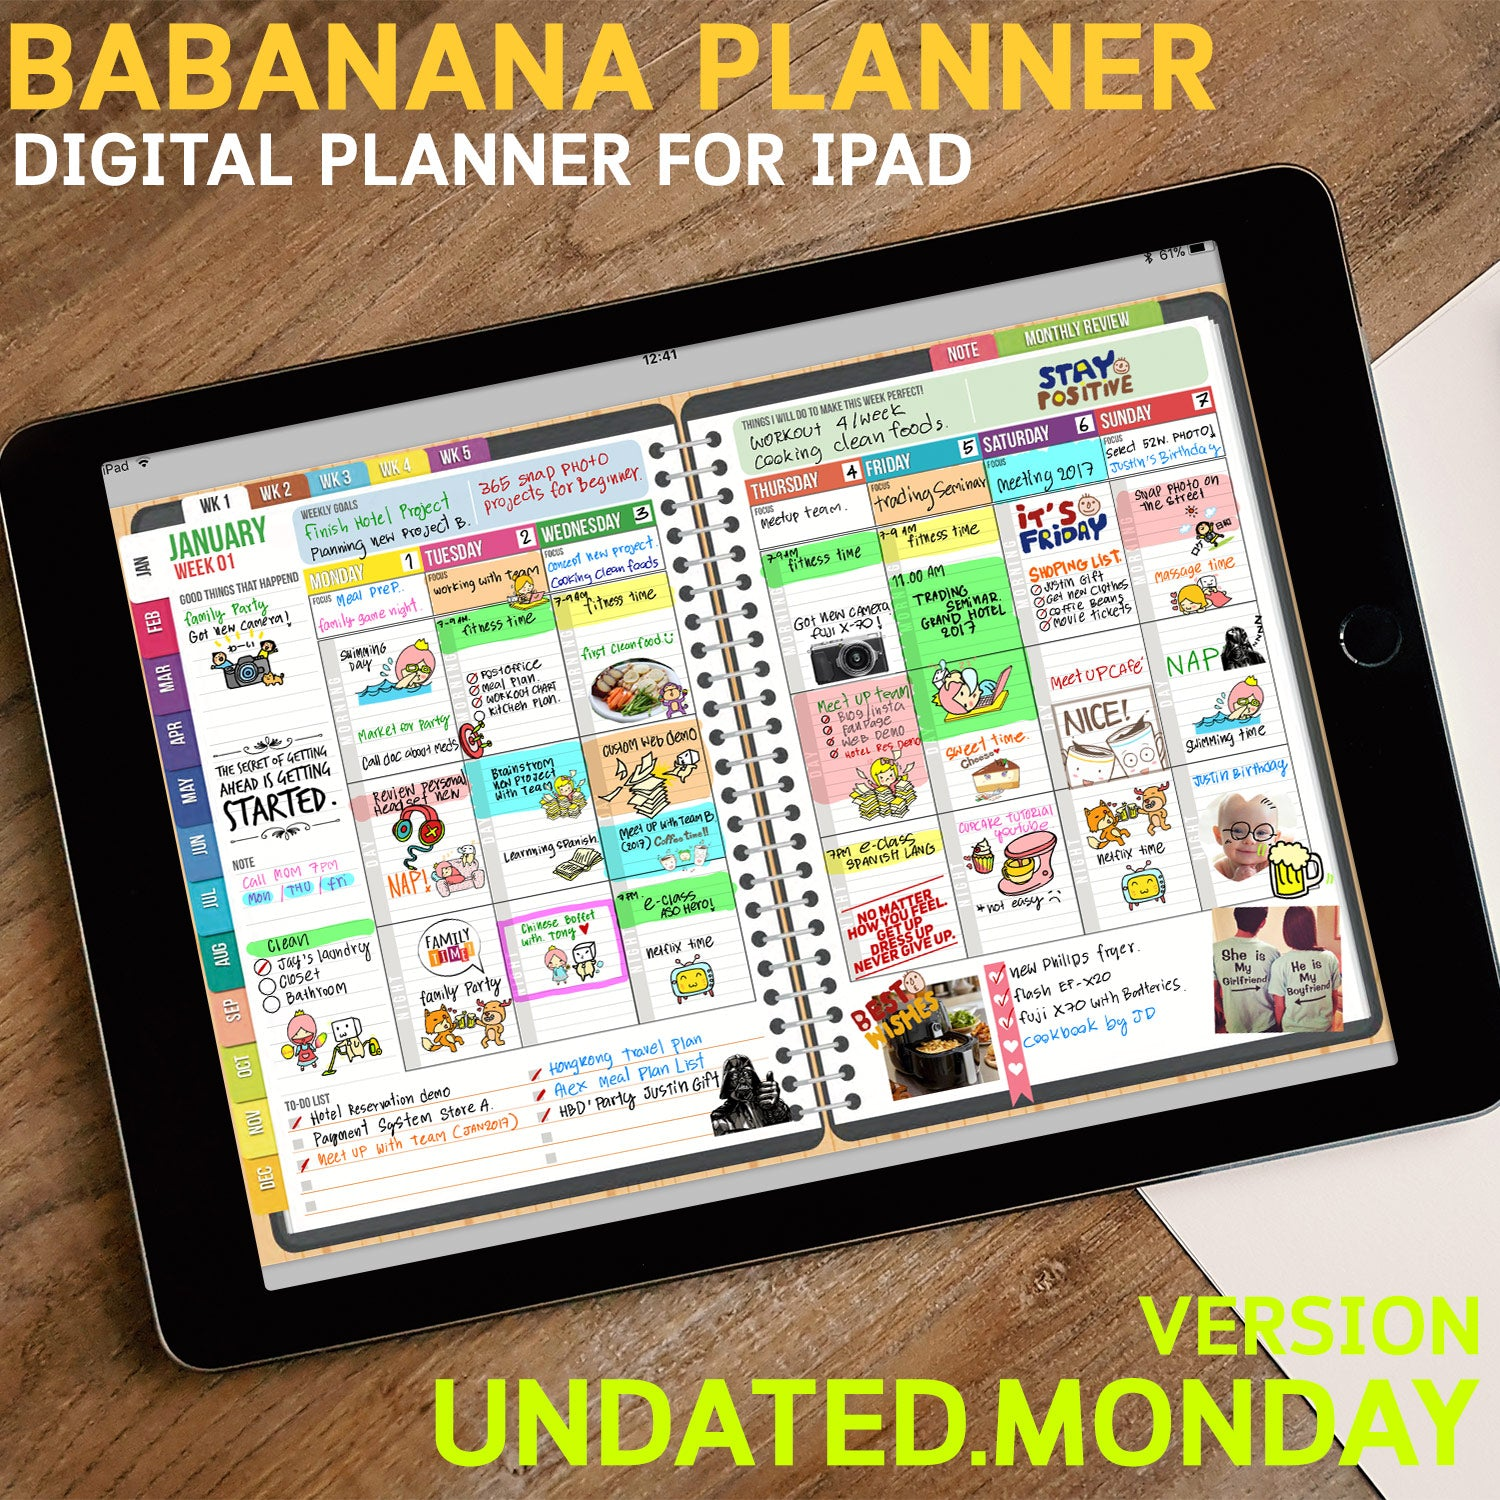 photo about Free Digital Planner Pdf titled BabaNana Electronic Planner for GoodNotes with doing work tabs : UNDATED MONDAY Model